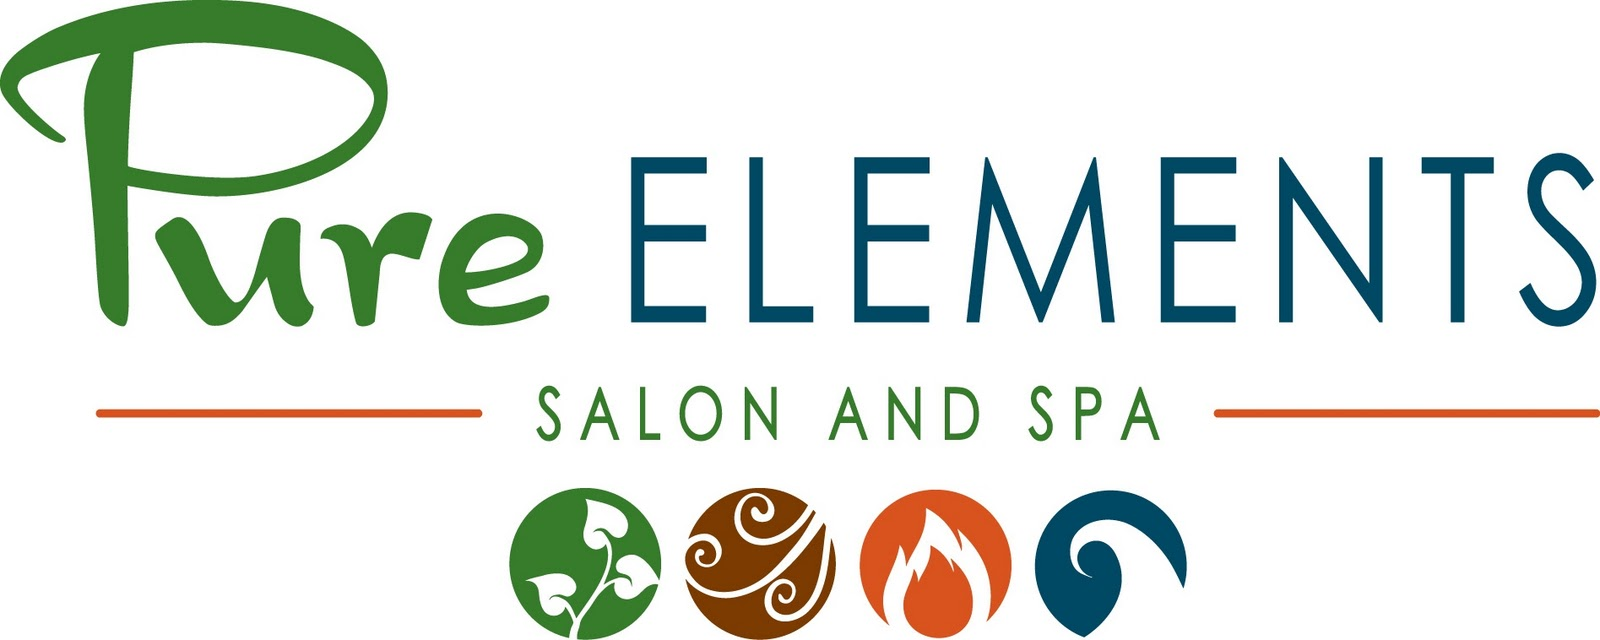 Pure elements salon and spa february deals for 4 elements salon